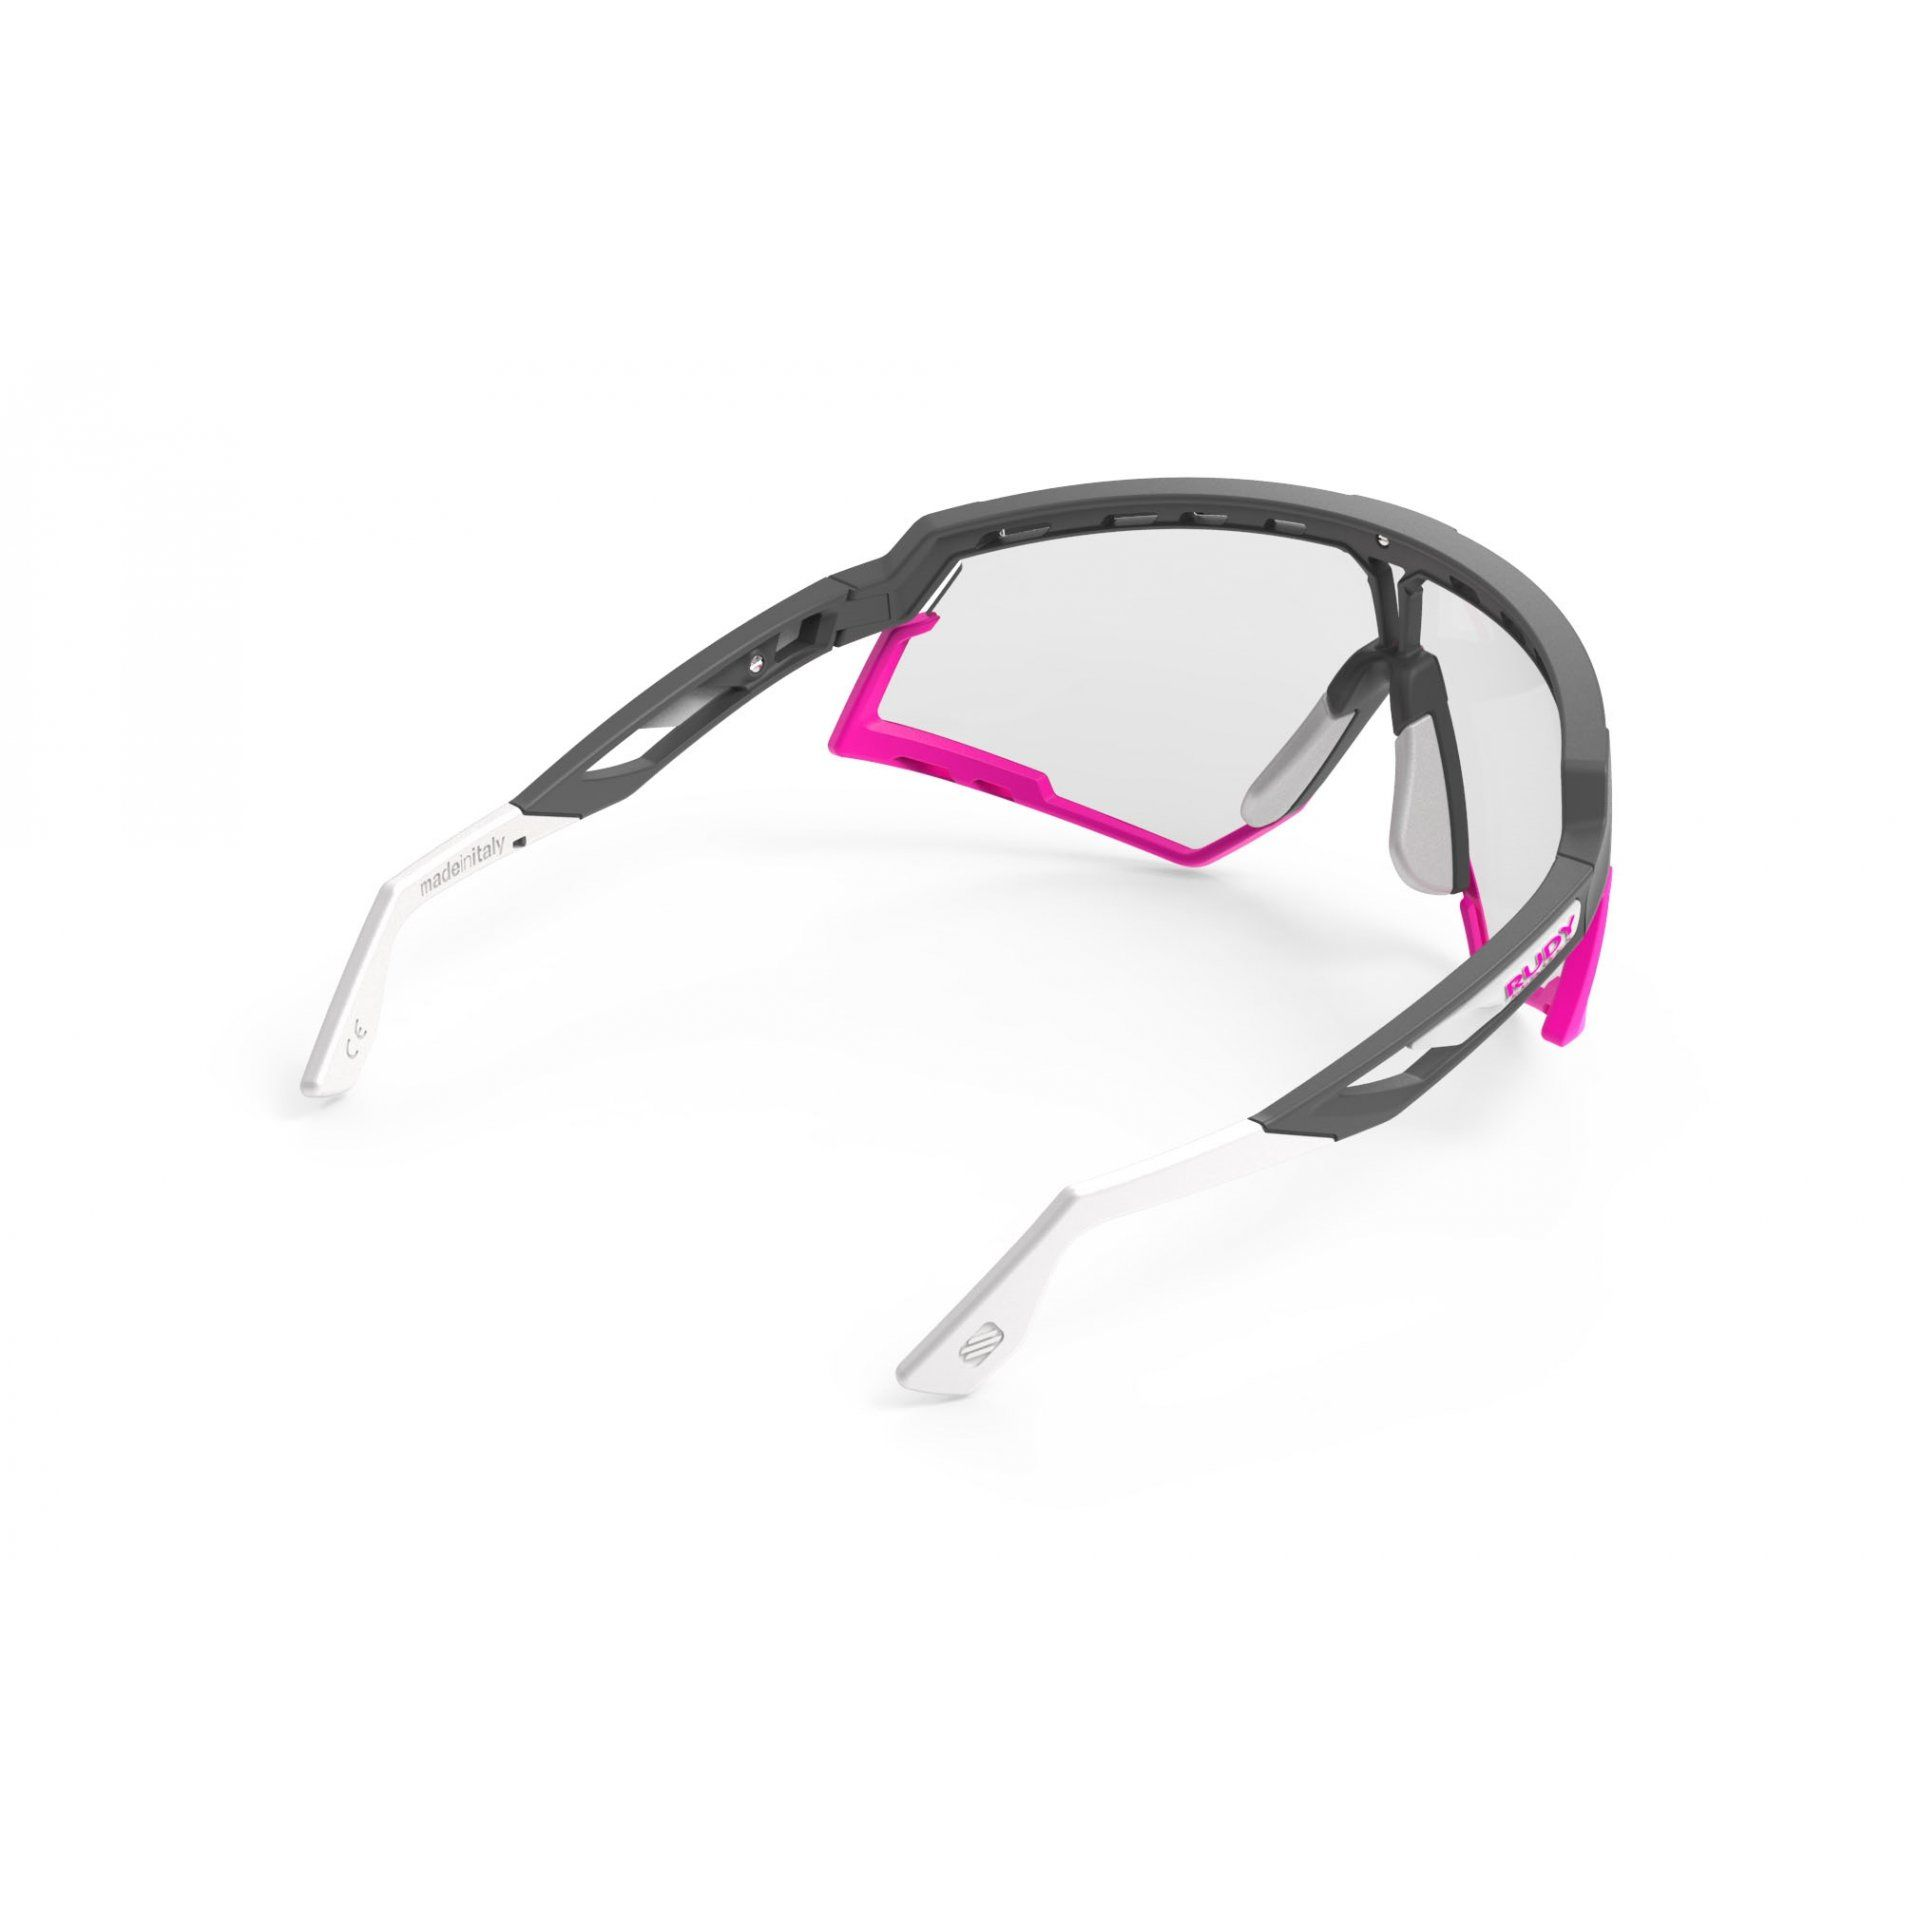 OKULARY RUDY PROJECT DEFENDER PYOMBO MATTE|FUXIA+PHOTOCHROMIC BLACK 5